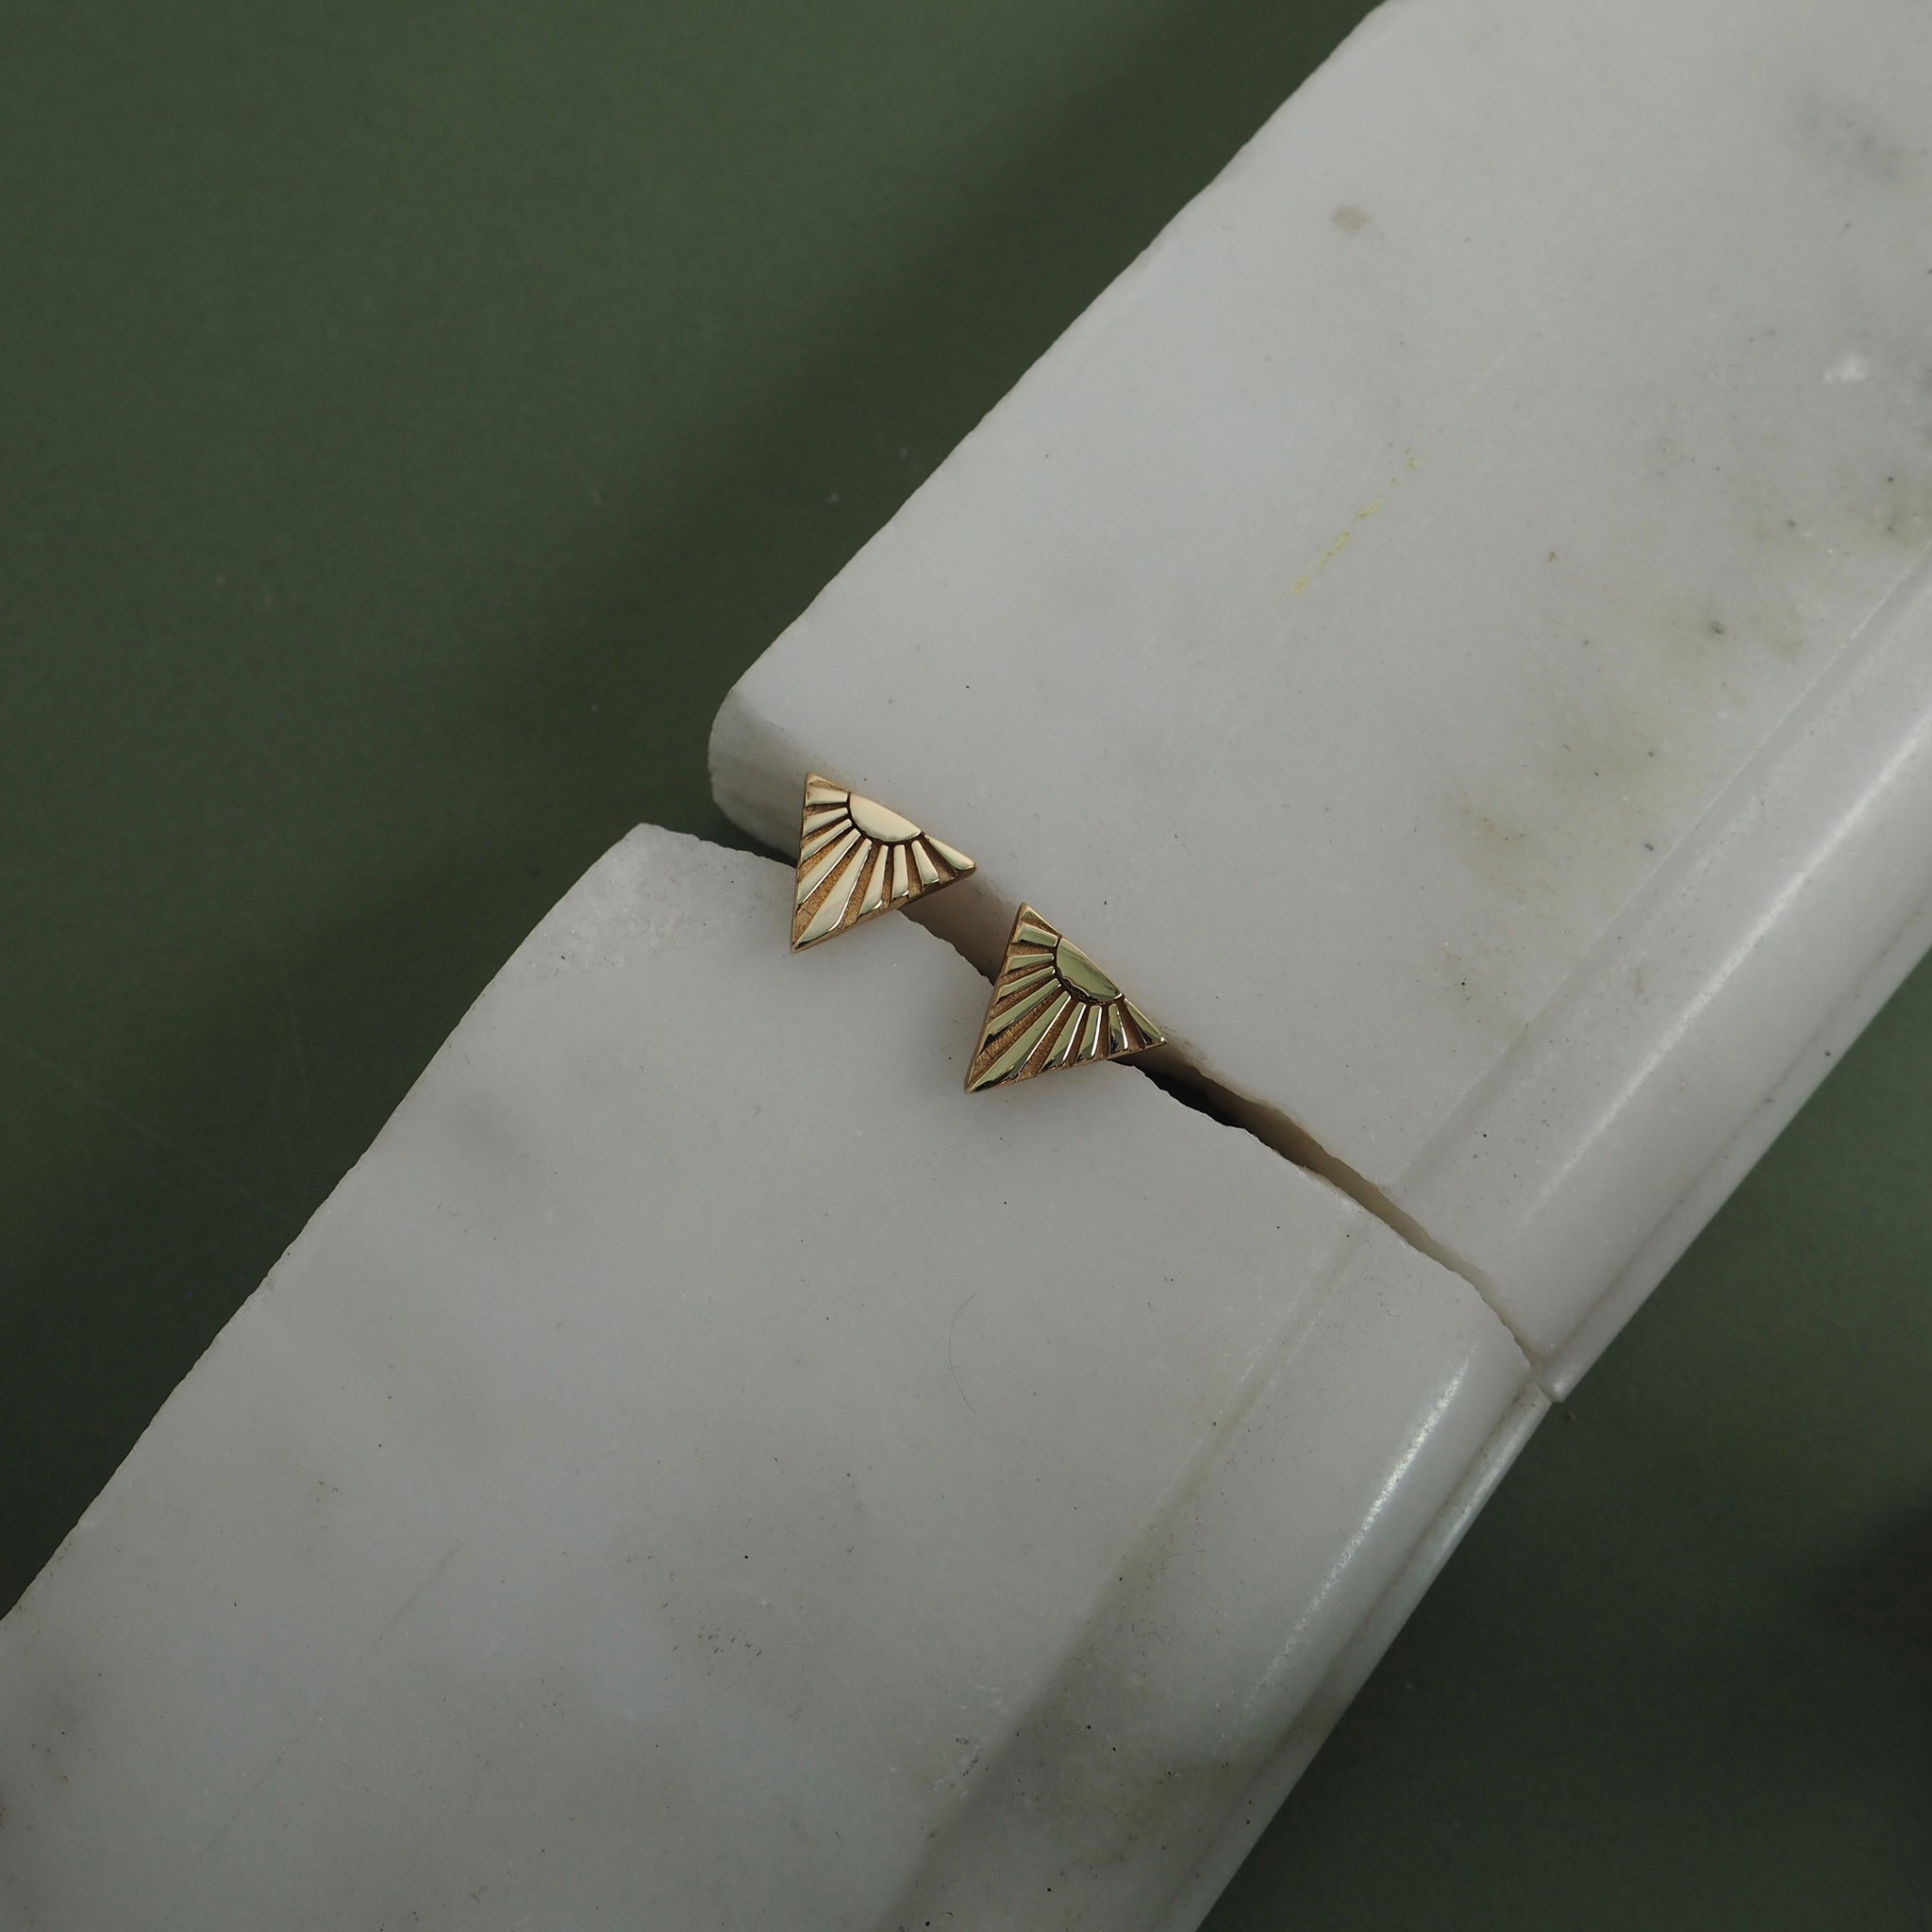 9ct Gold Ray V Ear Studs by Yasmin Everley